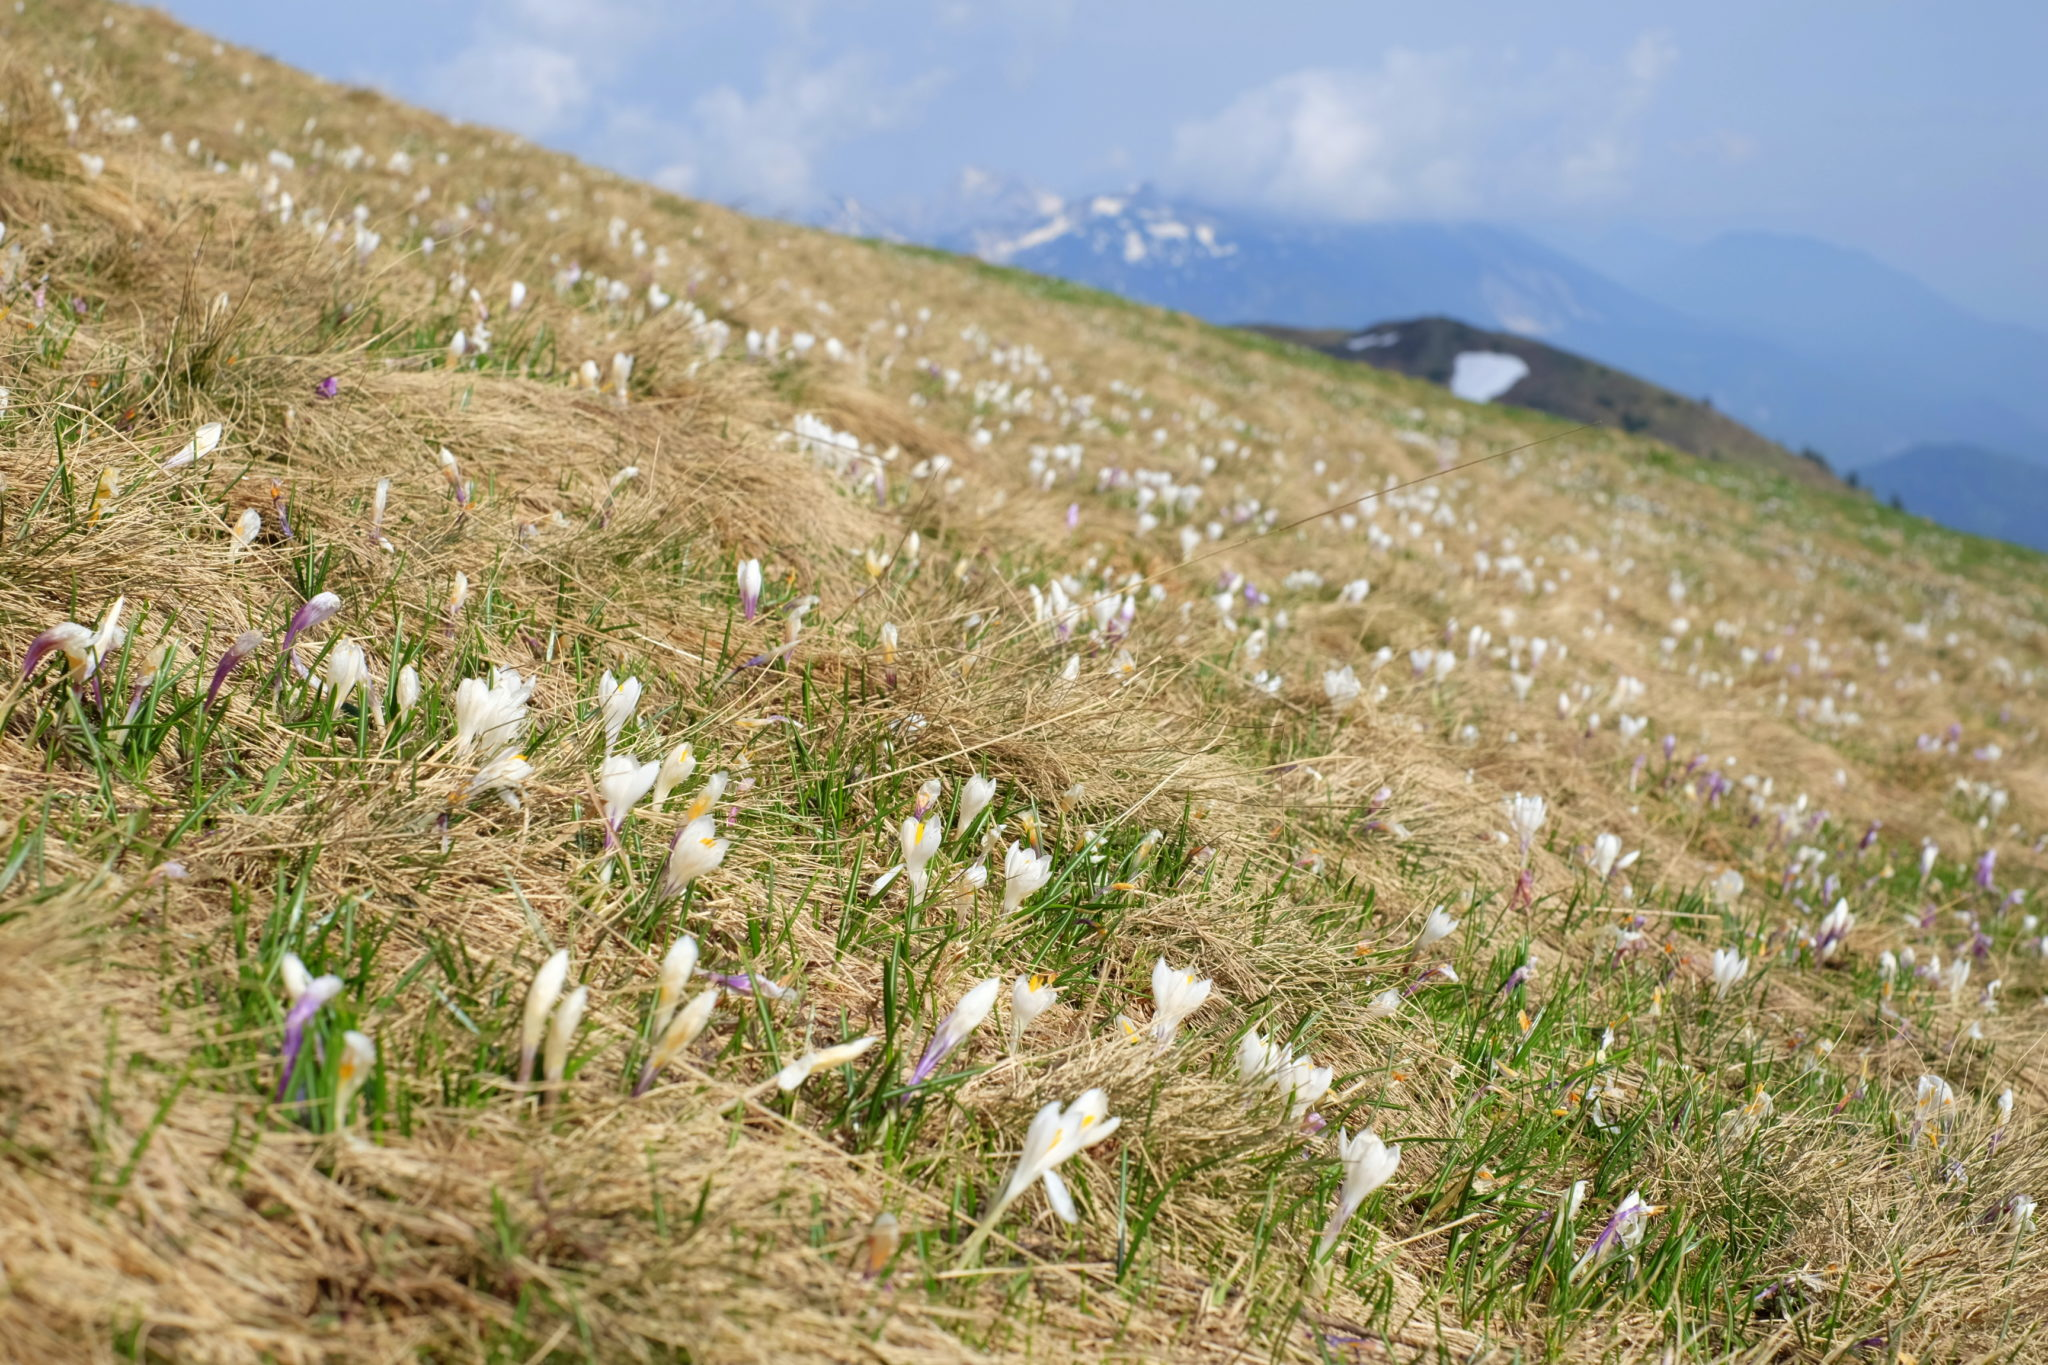 Blooming crocuses on the southern slopes of Dovška Baba, Slovenia, the Karawanks mountains